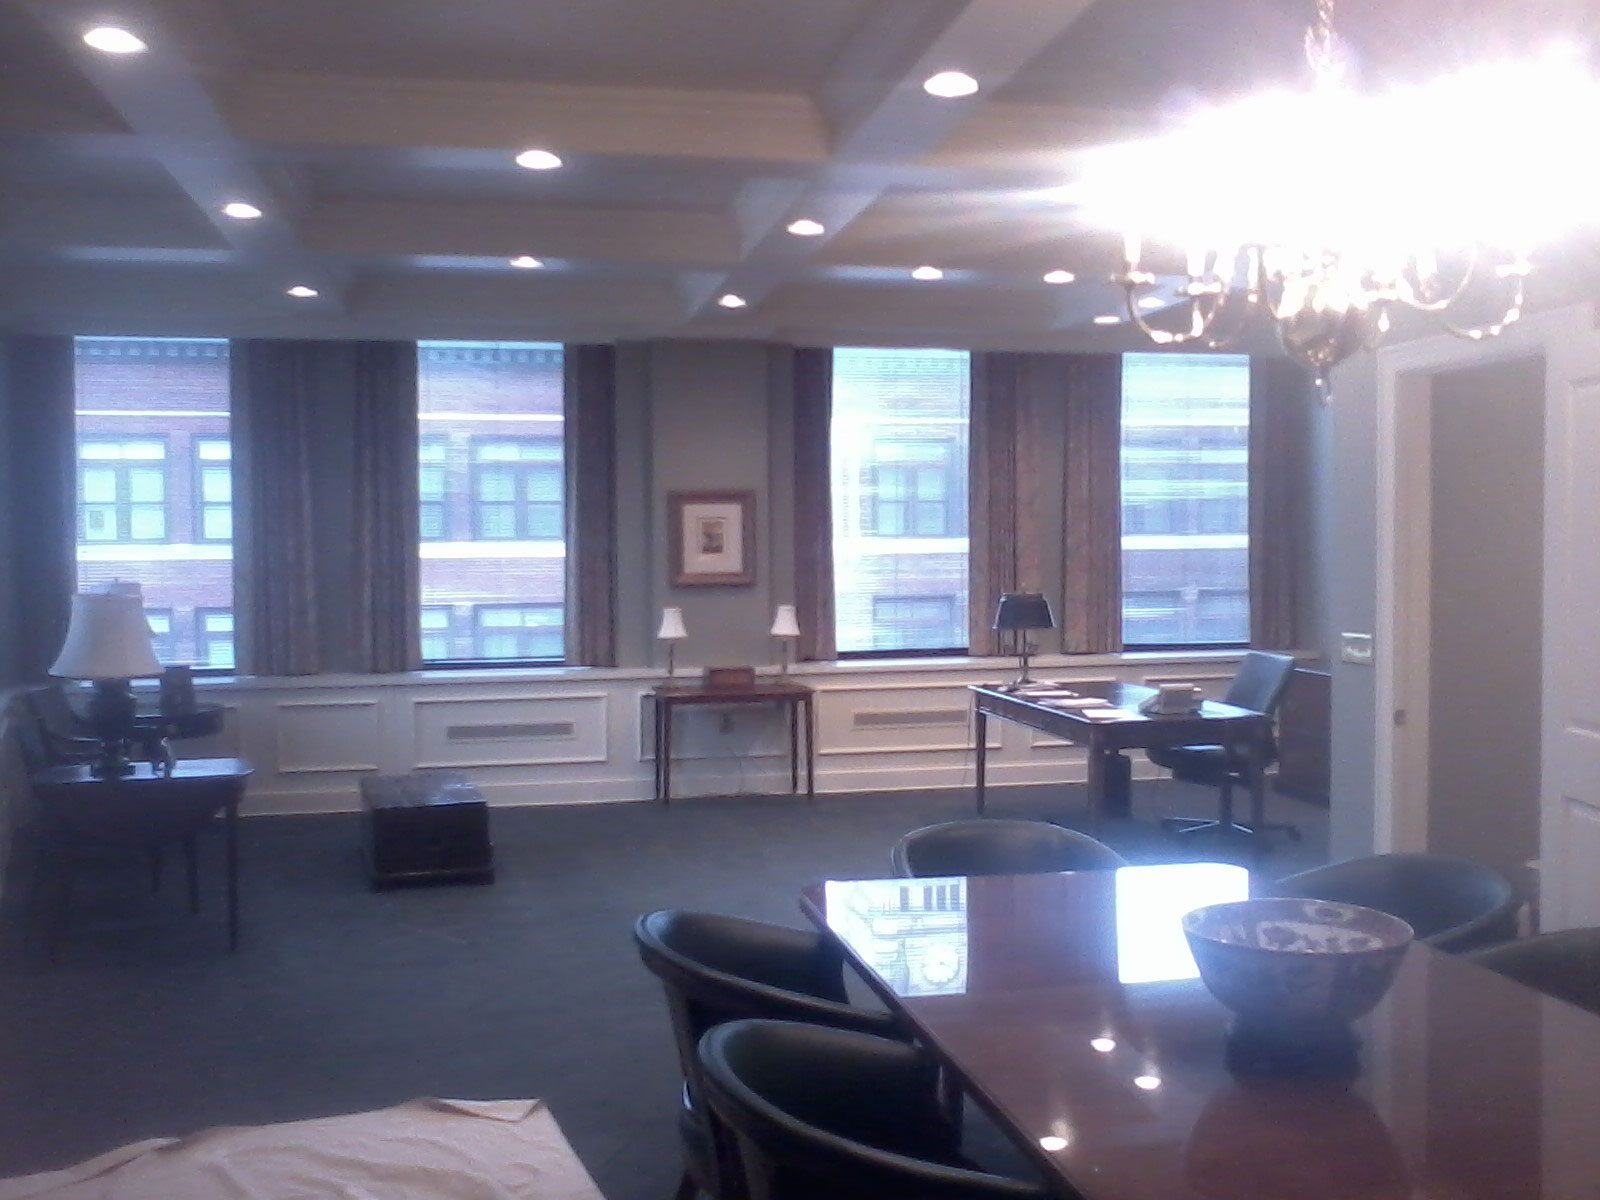 madison-painter-law-offices.jpg